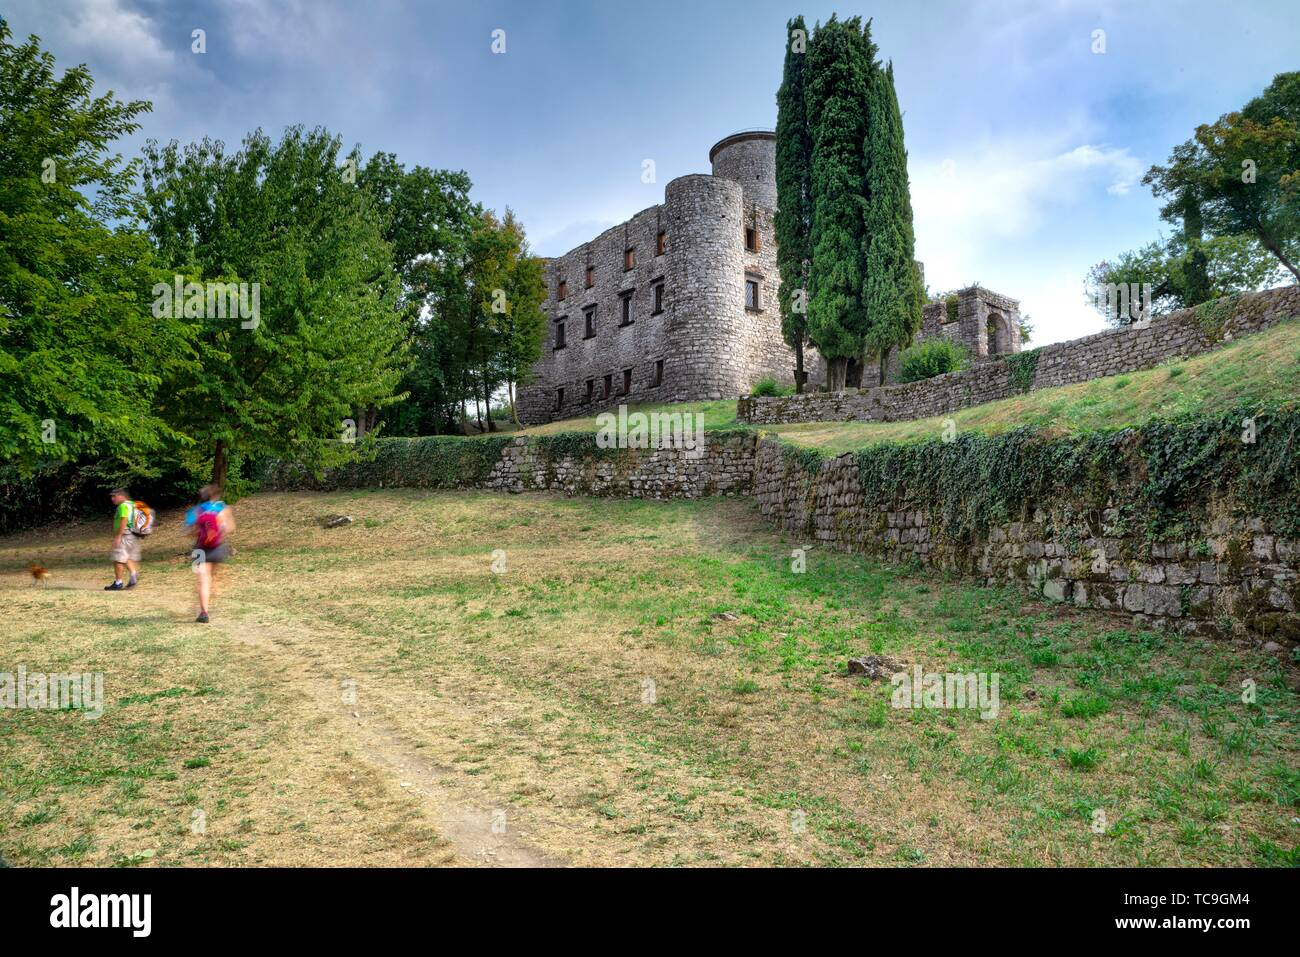 Monte Isola, Rocca Martinengo. Stock Photo